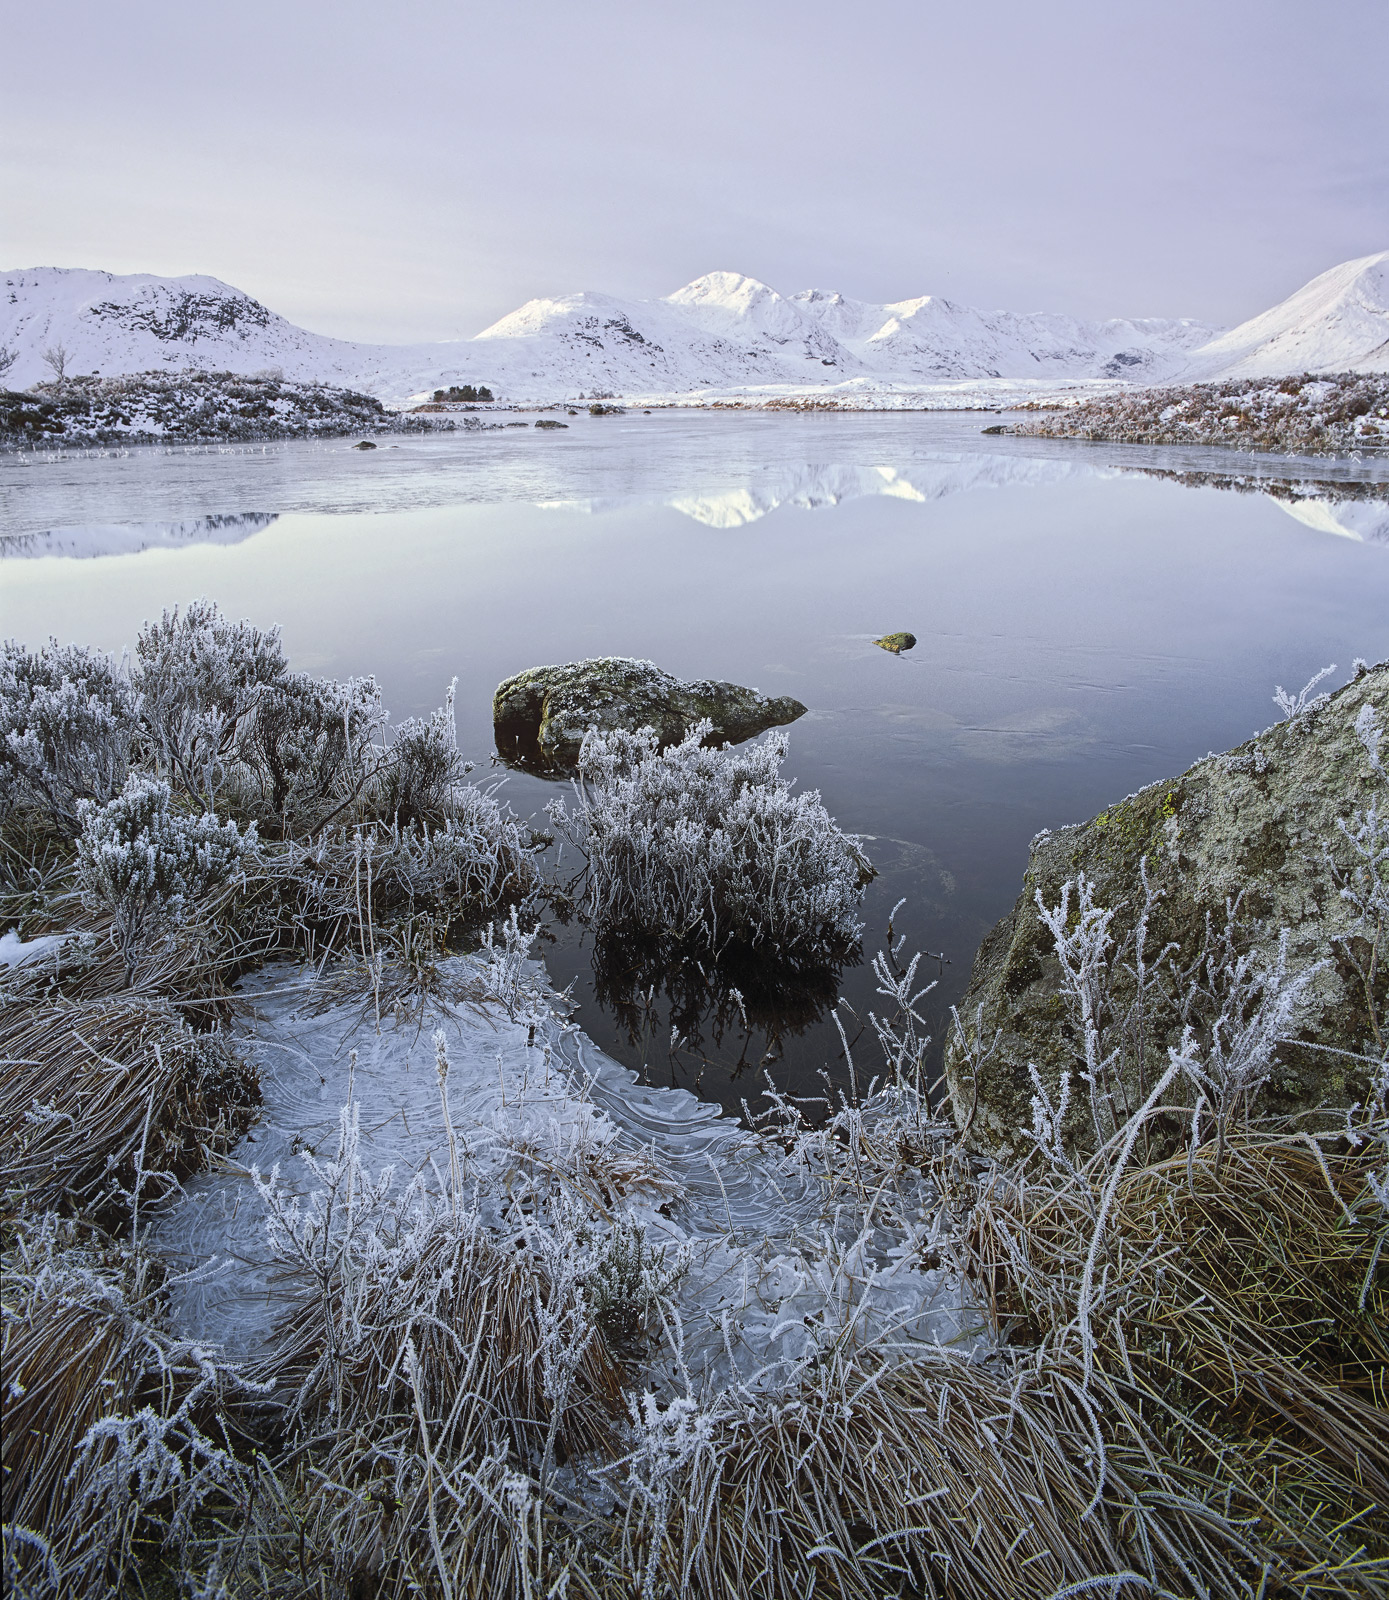 A bone chilling frost descended on Loch n'a-chlaise on Rannoch moor freezing every blade of grass and twig and encapsulating...